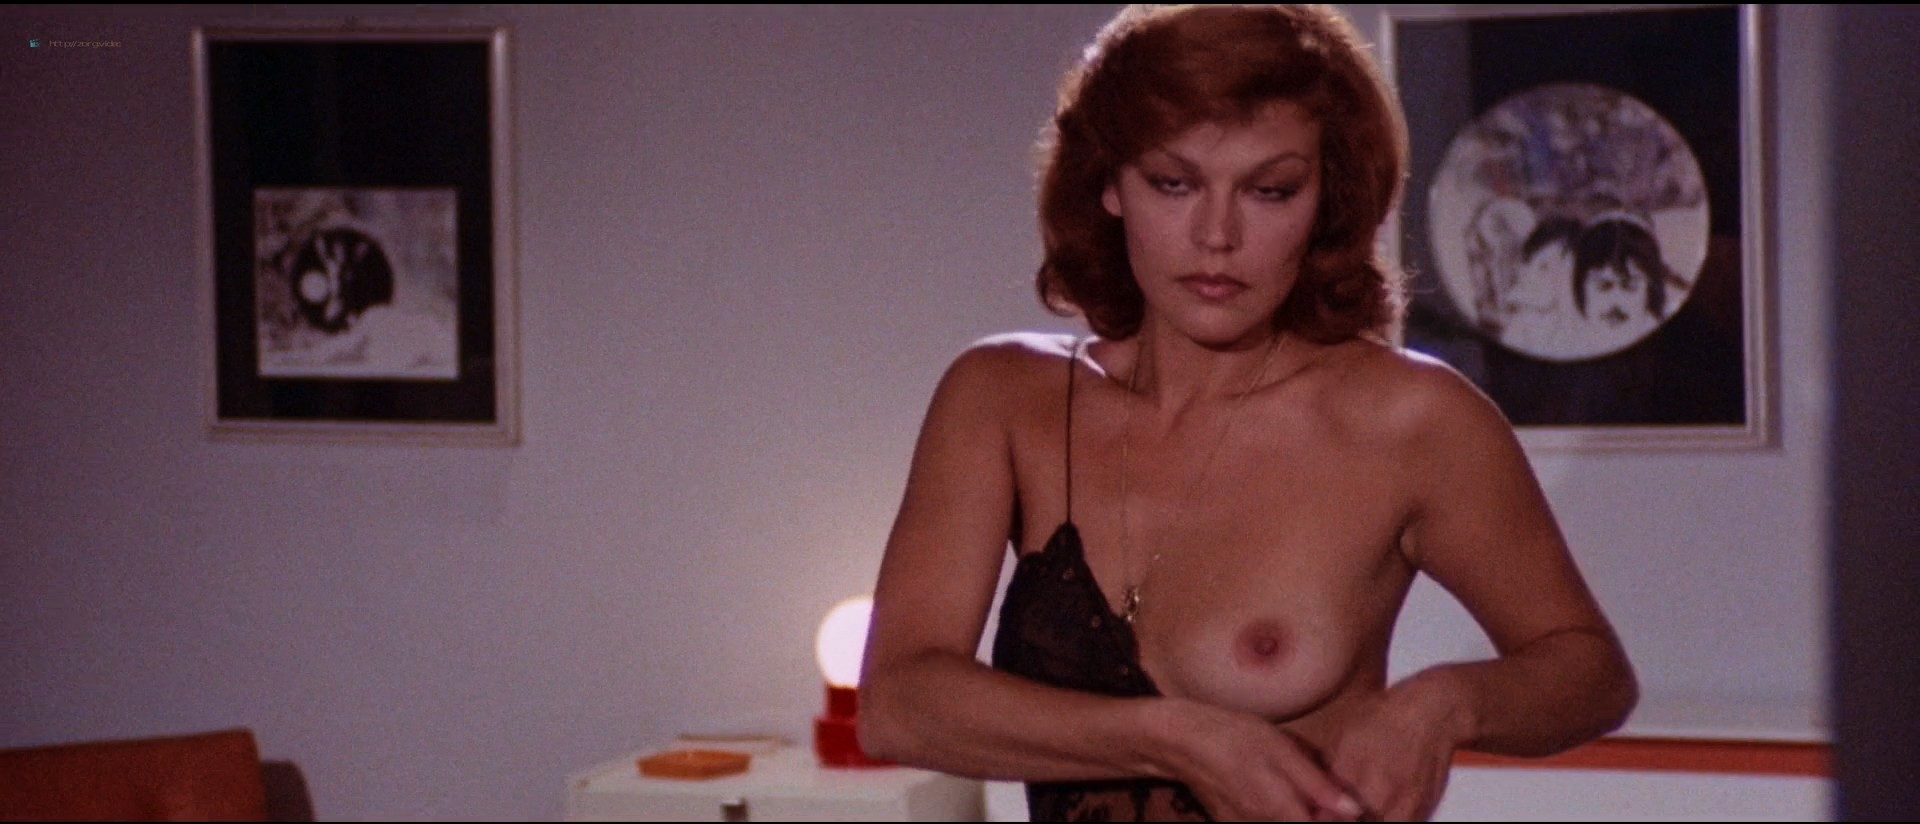 Martine Brochard nude Mirta Miller, Ines Pellegrini nude too - Eyeball (IT-1975) 1080p BluRay (11)